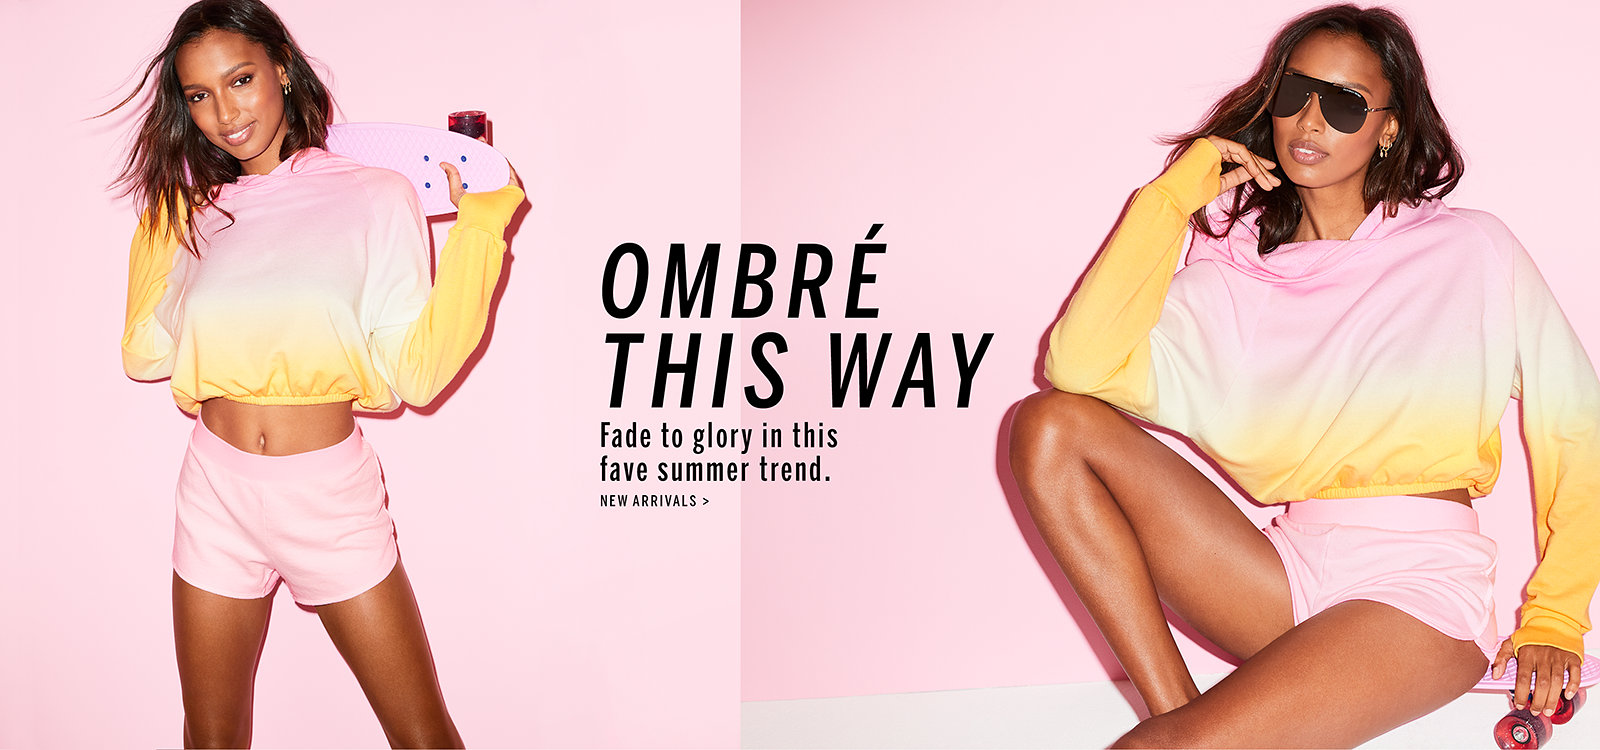 02627b2e10 Ombre This Way. Fade to glory in this fave summer trend. Click for new